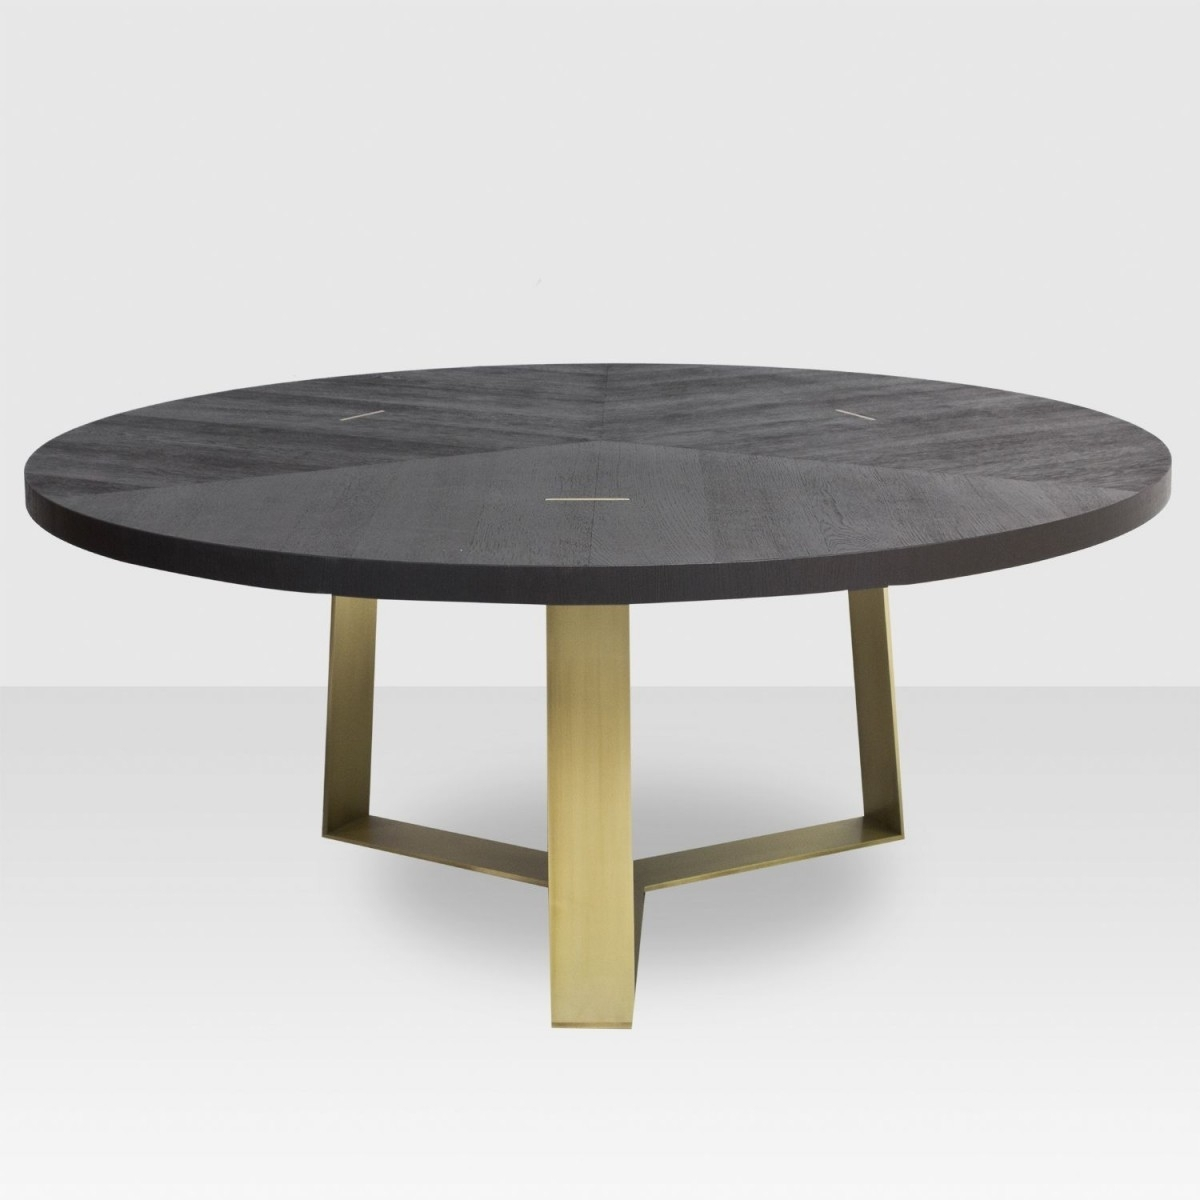 Sienna Dining Table – Elte In Newest Outdoor Sienna Dining Tables (Image 14 of 20)